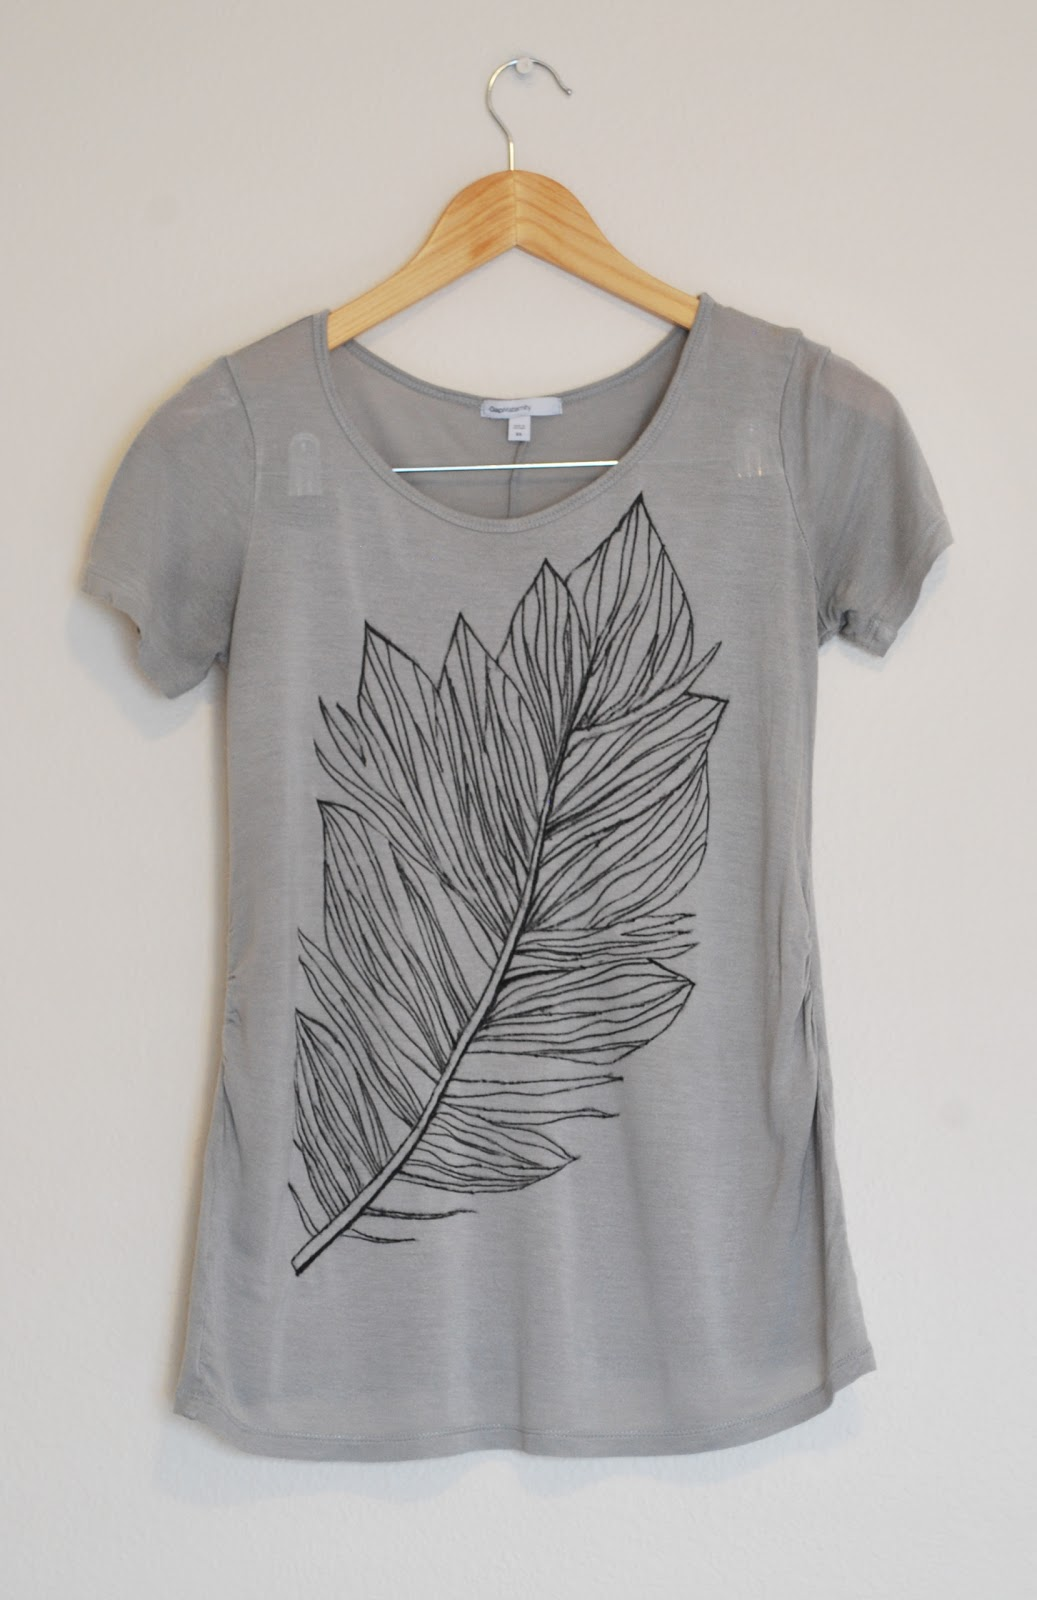 Merrick 39 s art style sewing for the everyday for How to make t shirt art